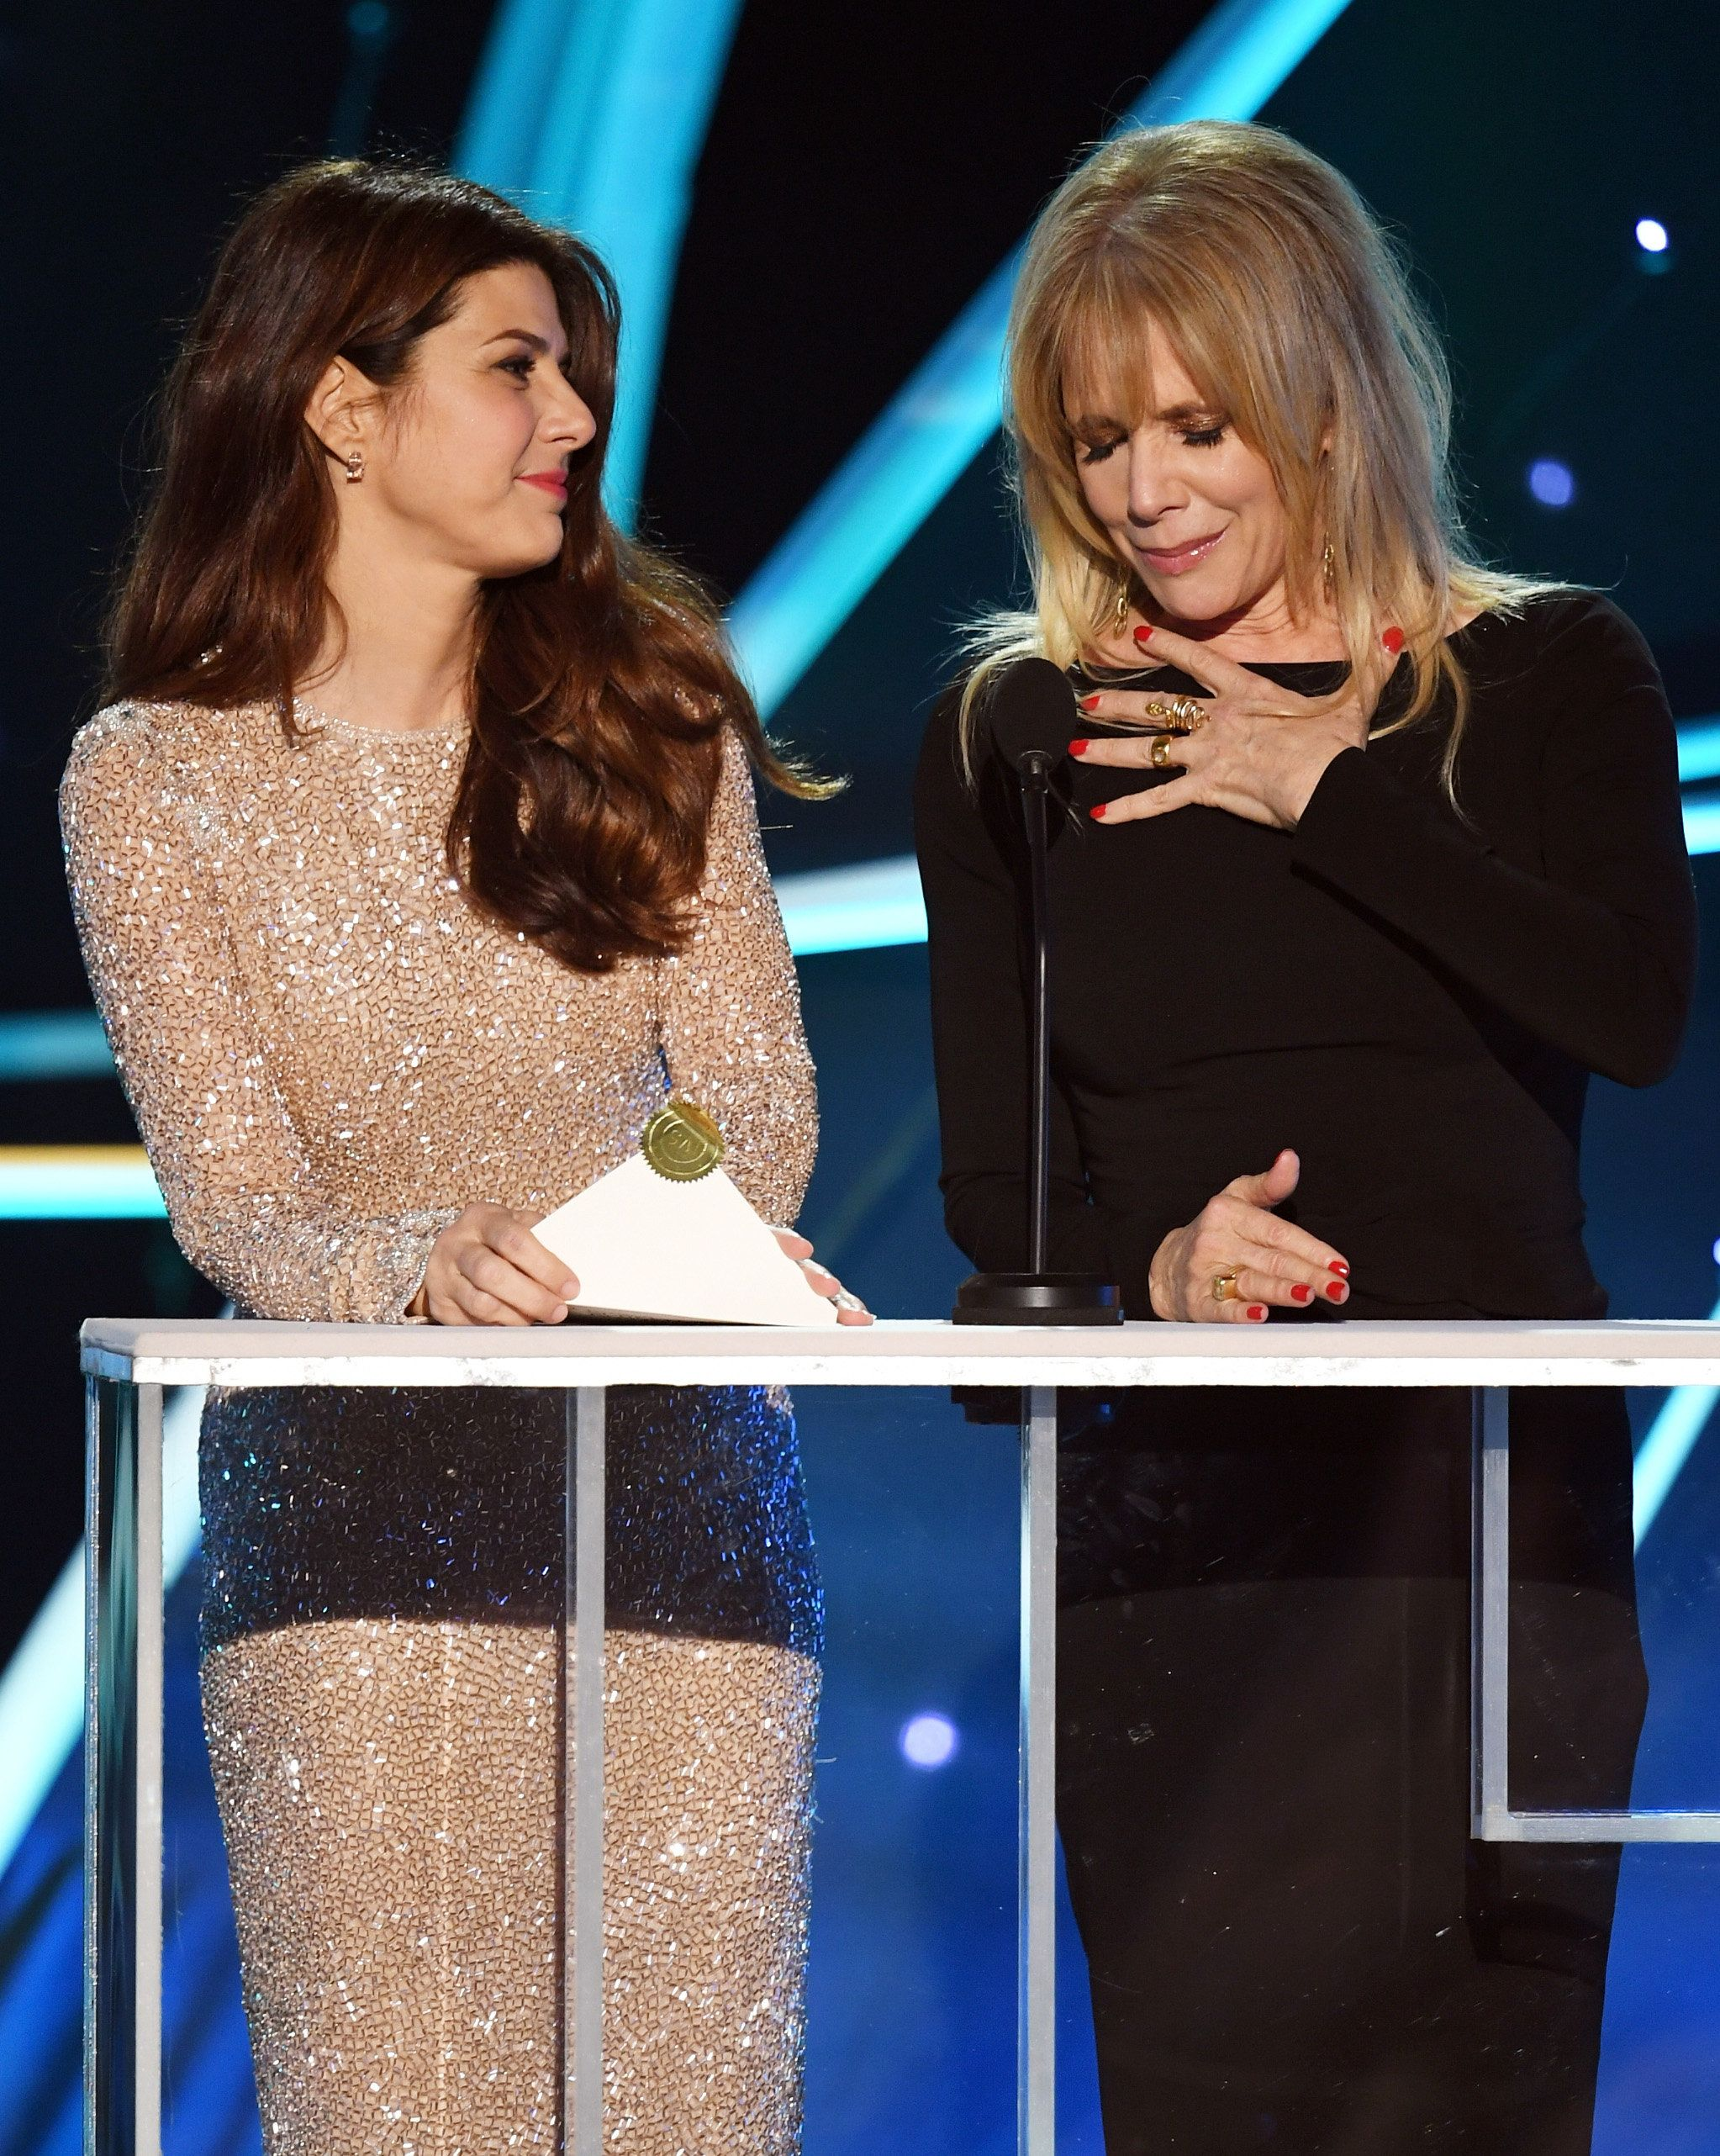 Marisa Tomei and Rosanna Arquette speak onstage at the 2018 SAG Awards.